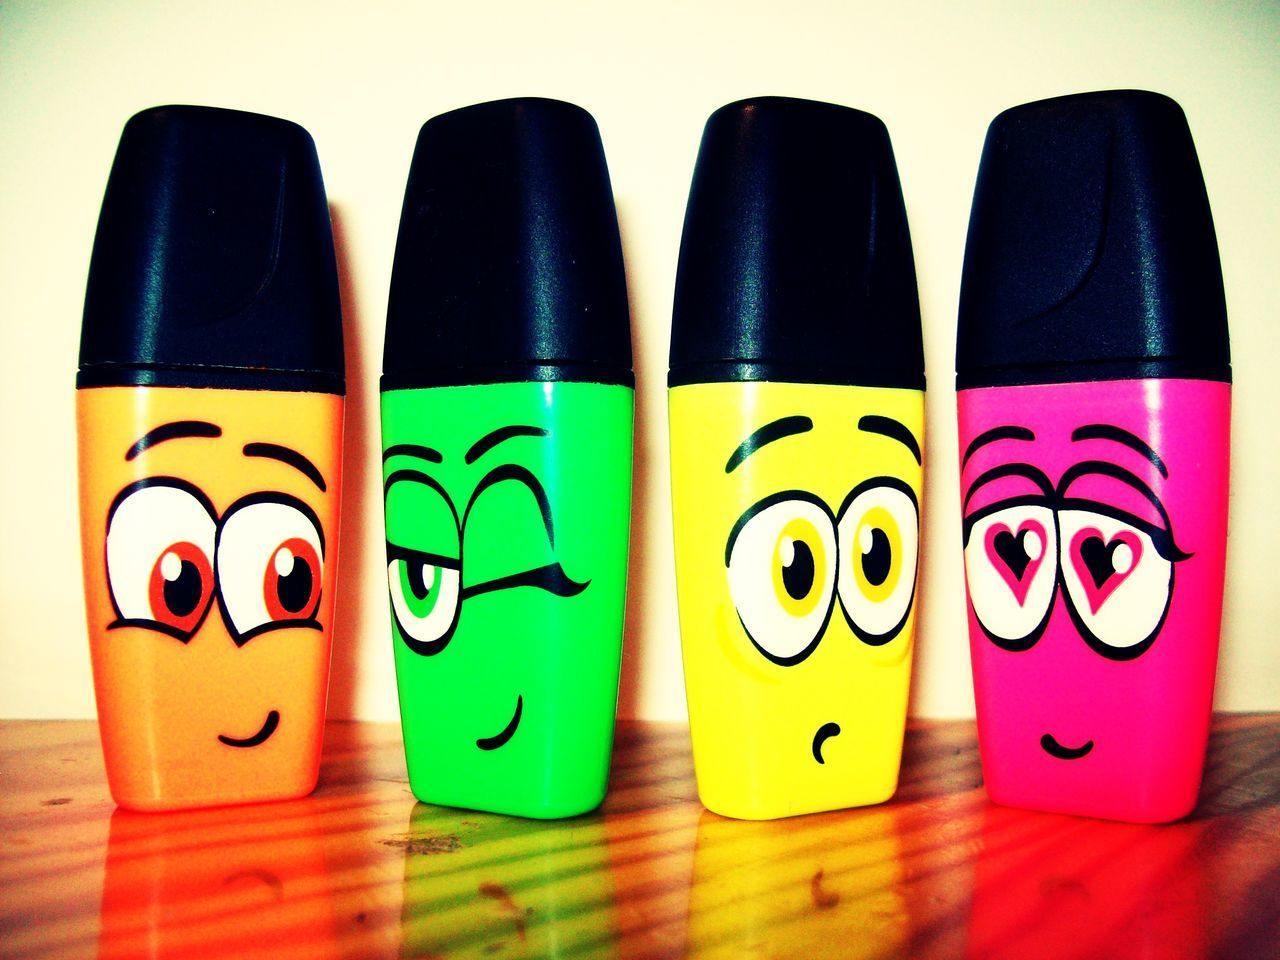 Anthropomorphic Face Close-up Felt Pens Funny Faces Green Highlighters In A Row Indoors  Love Eyes Multi Colored No People Orange Pink Variation Wink Yellow Visual Communication Show Emotion Things I Like School Supplies EyeEm Diversity